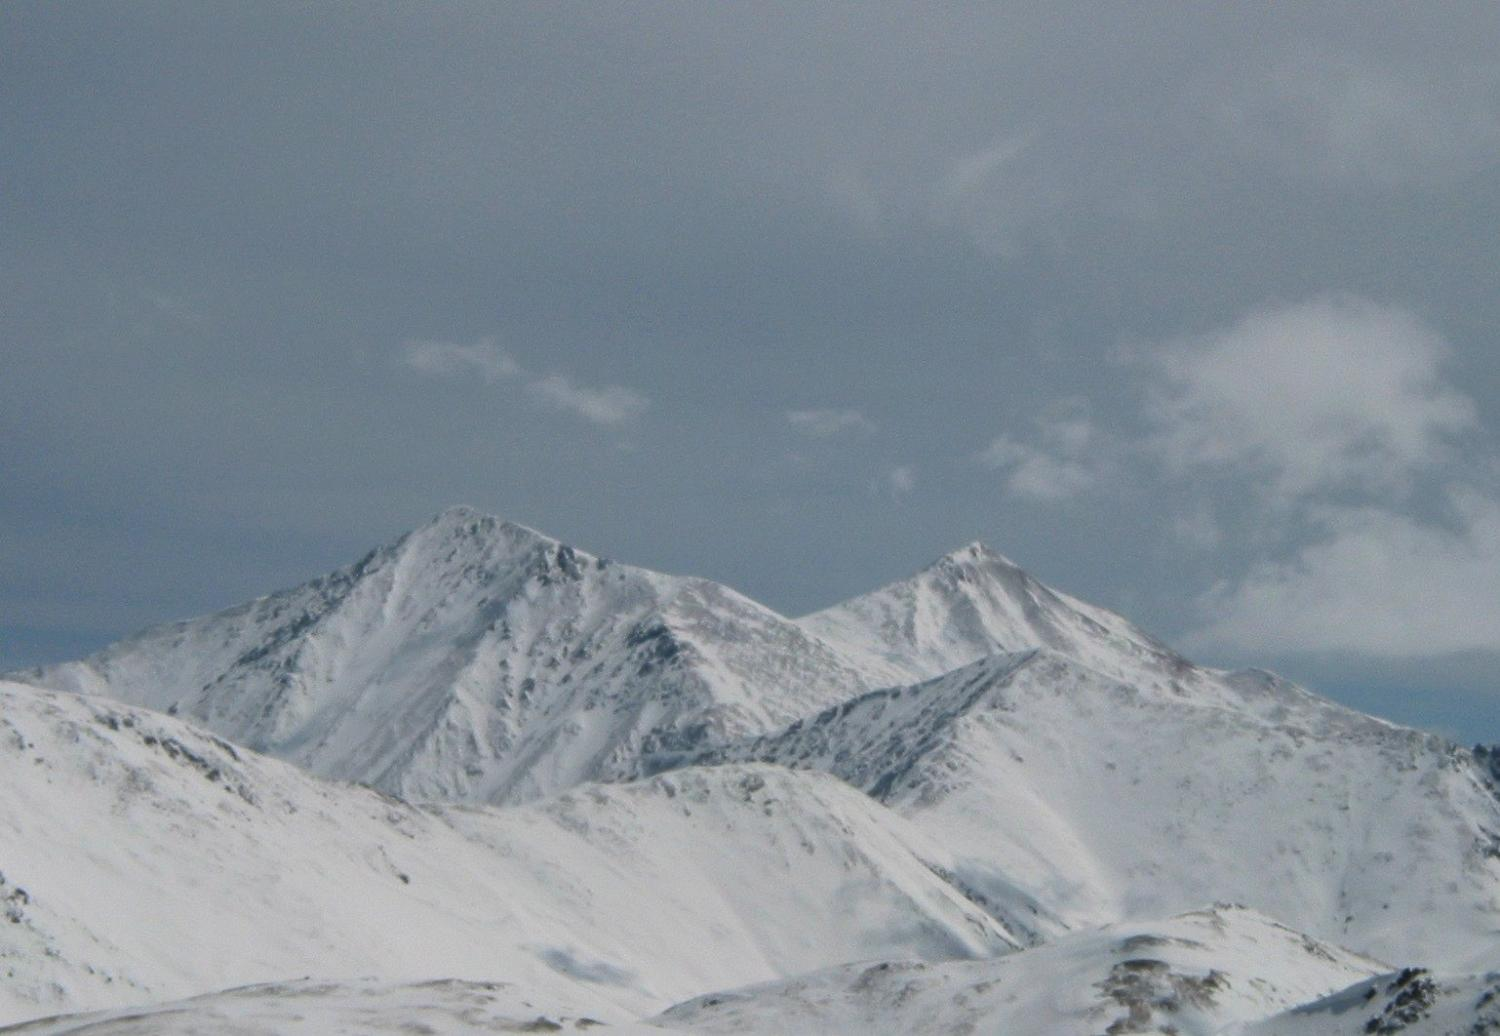 Grays and Torreys as viewed from Chairlift Number 9 in April 2009